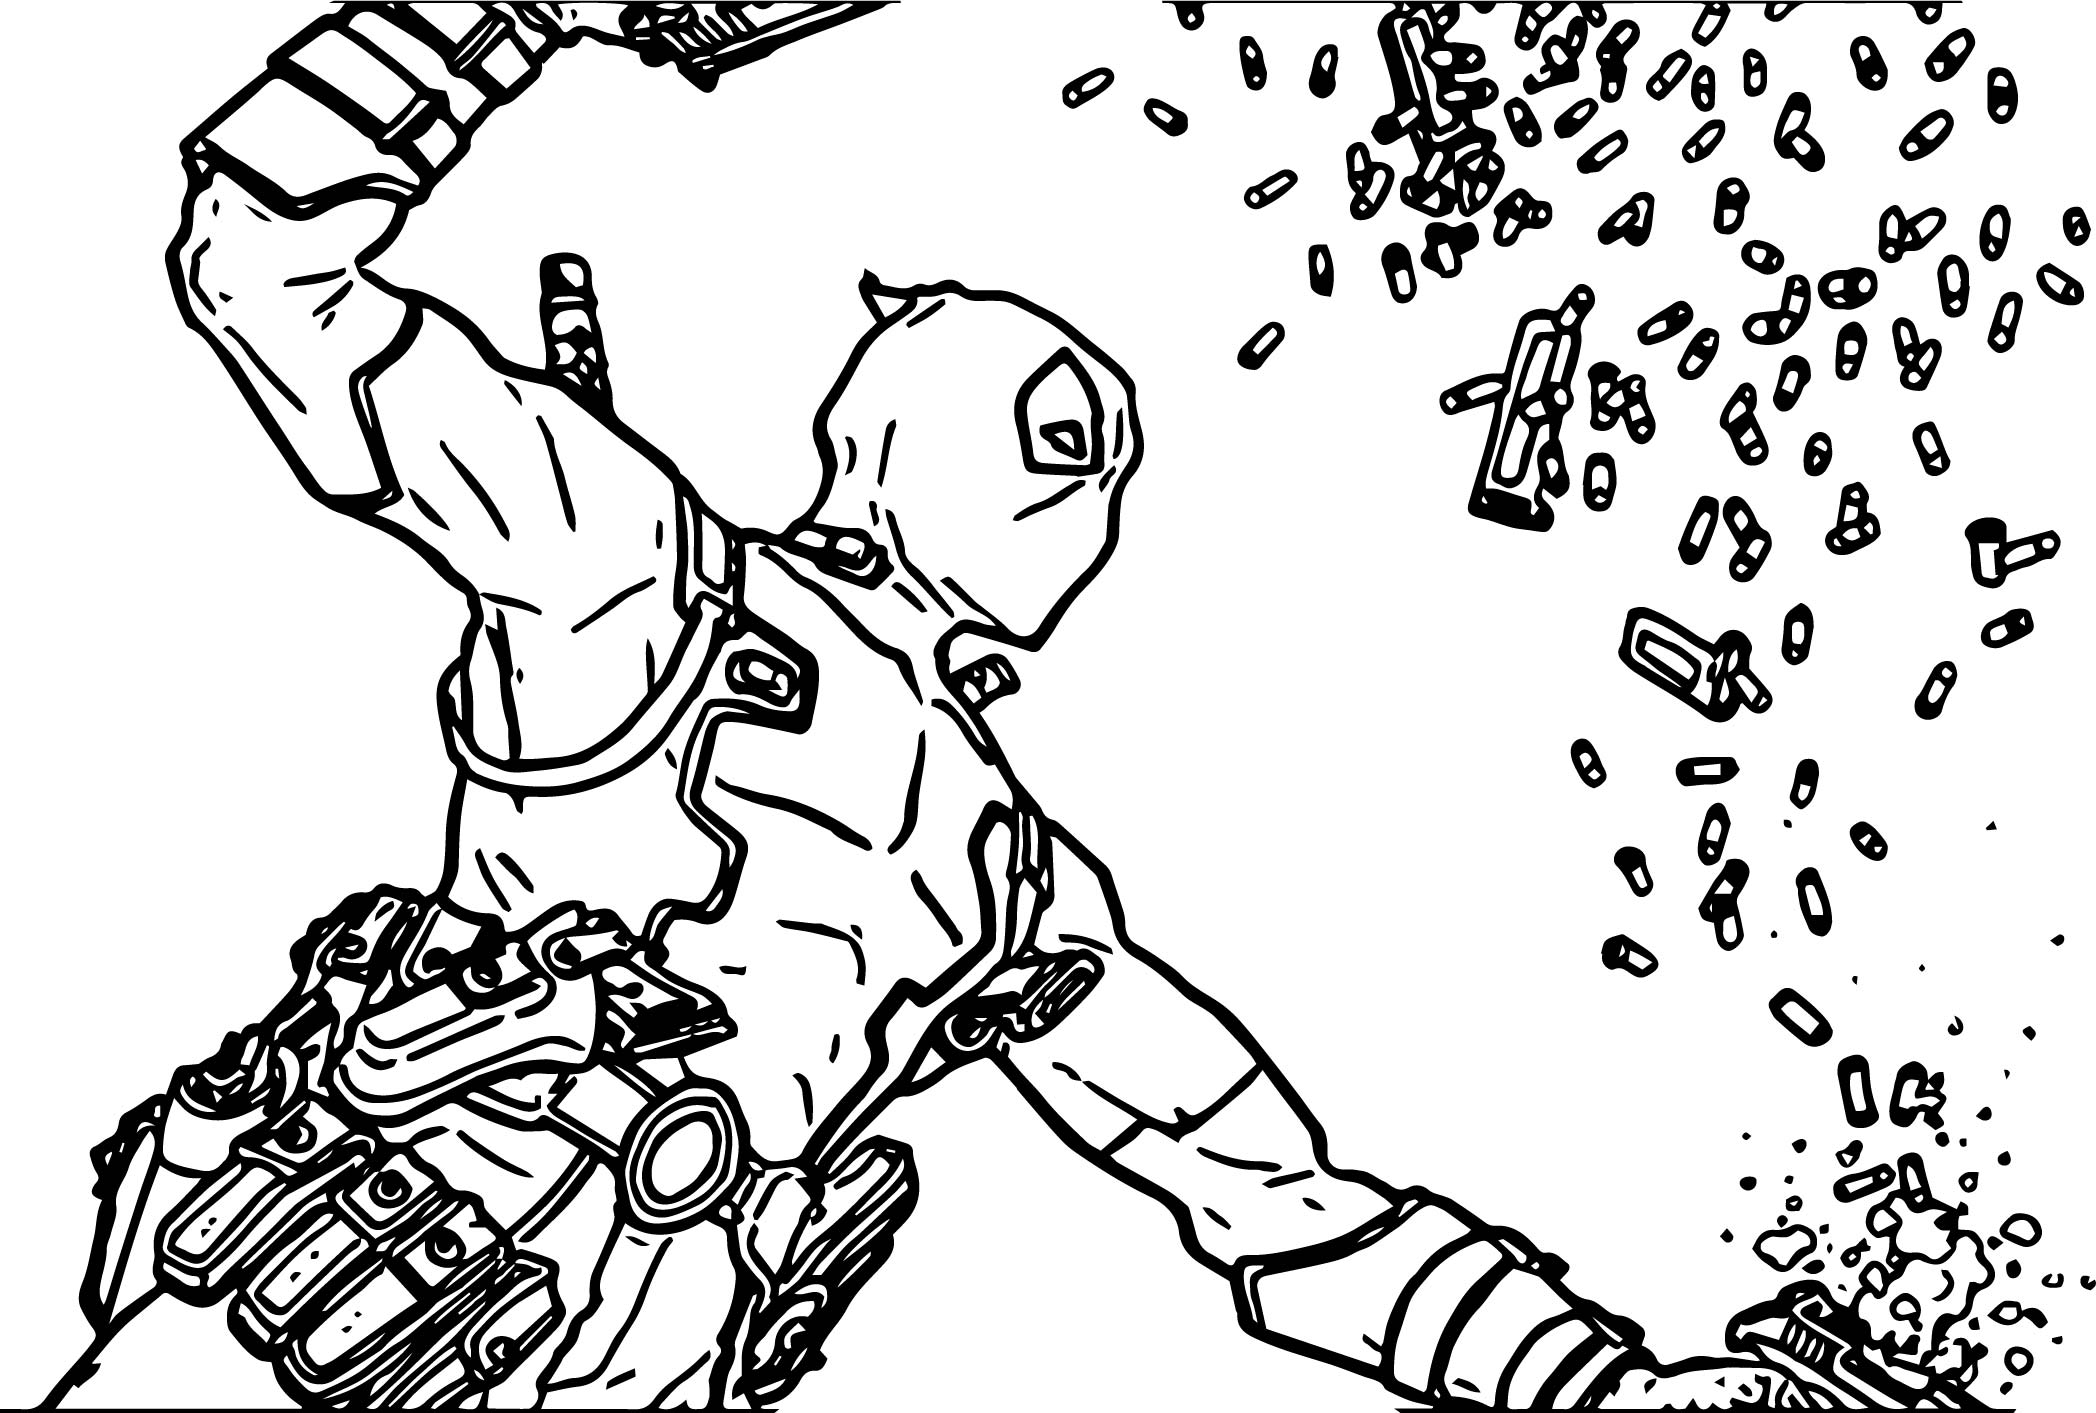 Deadpool Coloring Pages: Deadpool Bullet Coloring Page